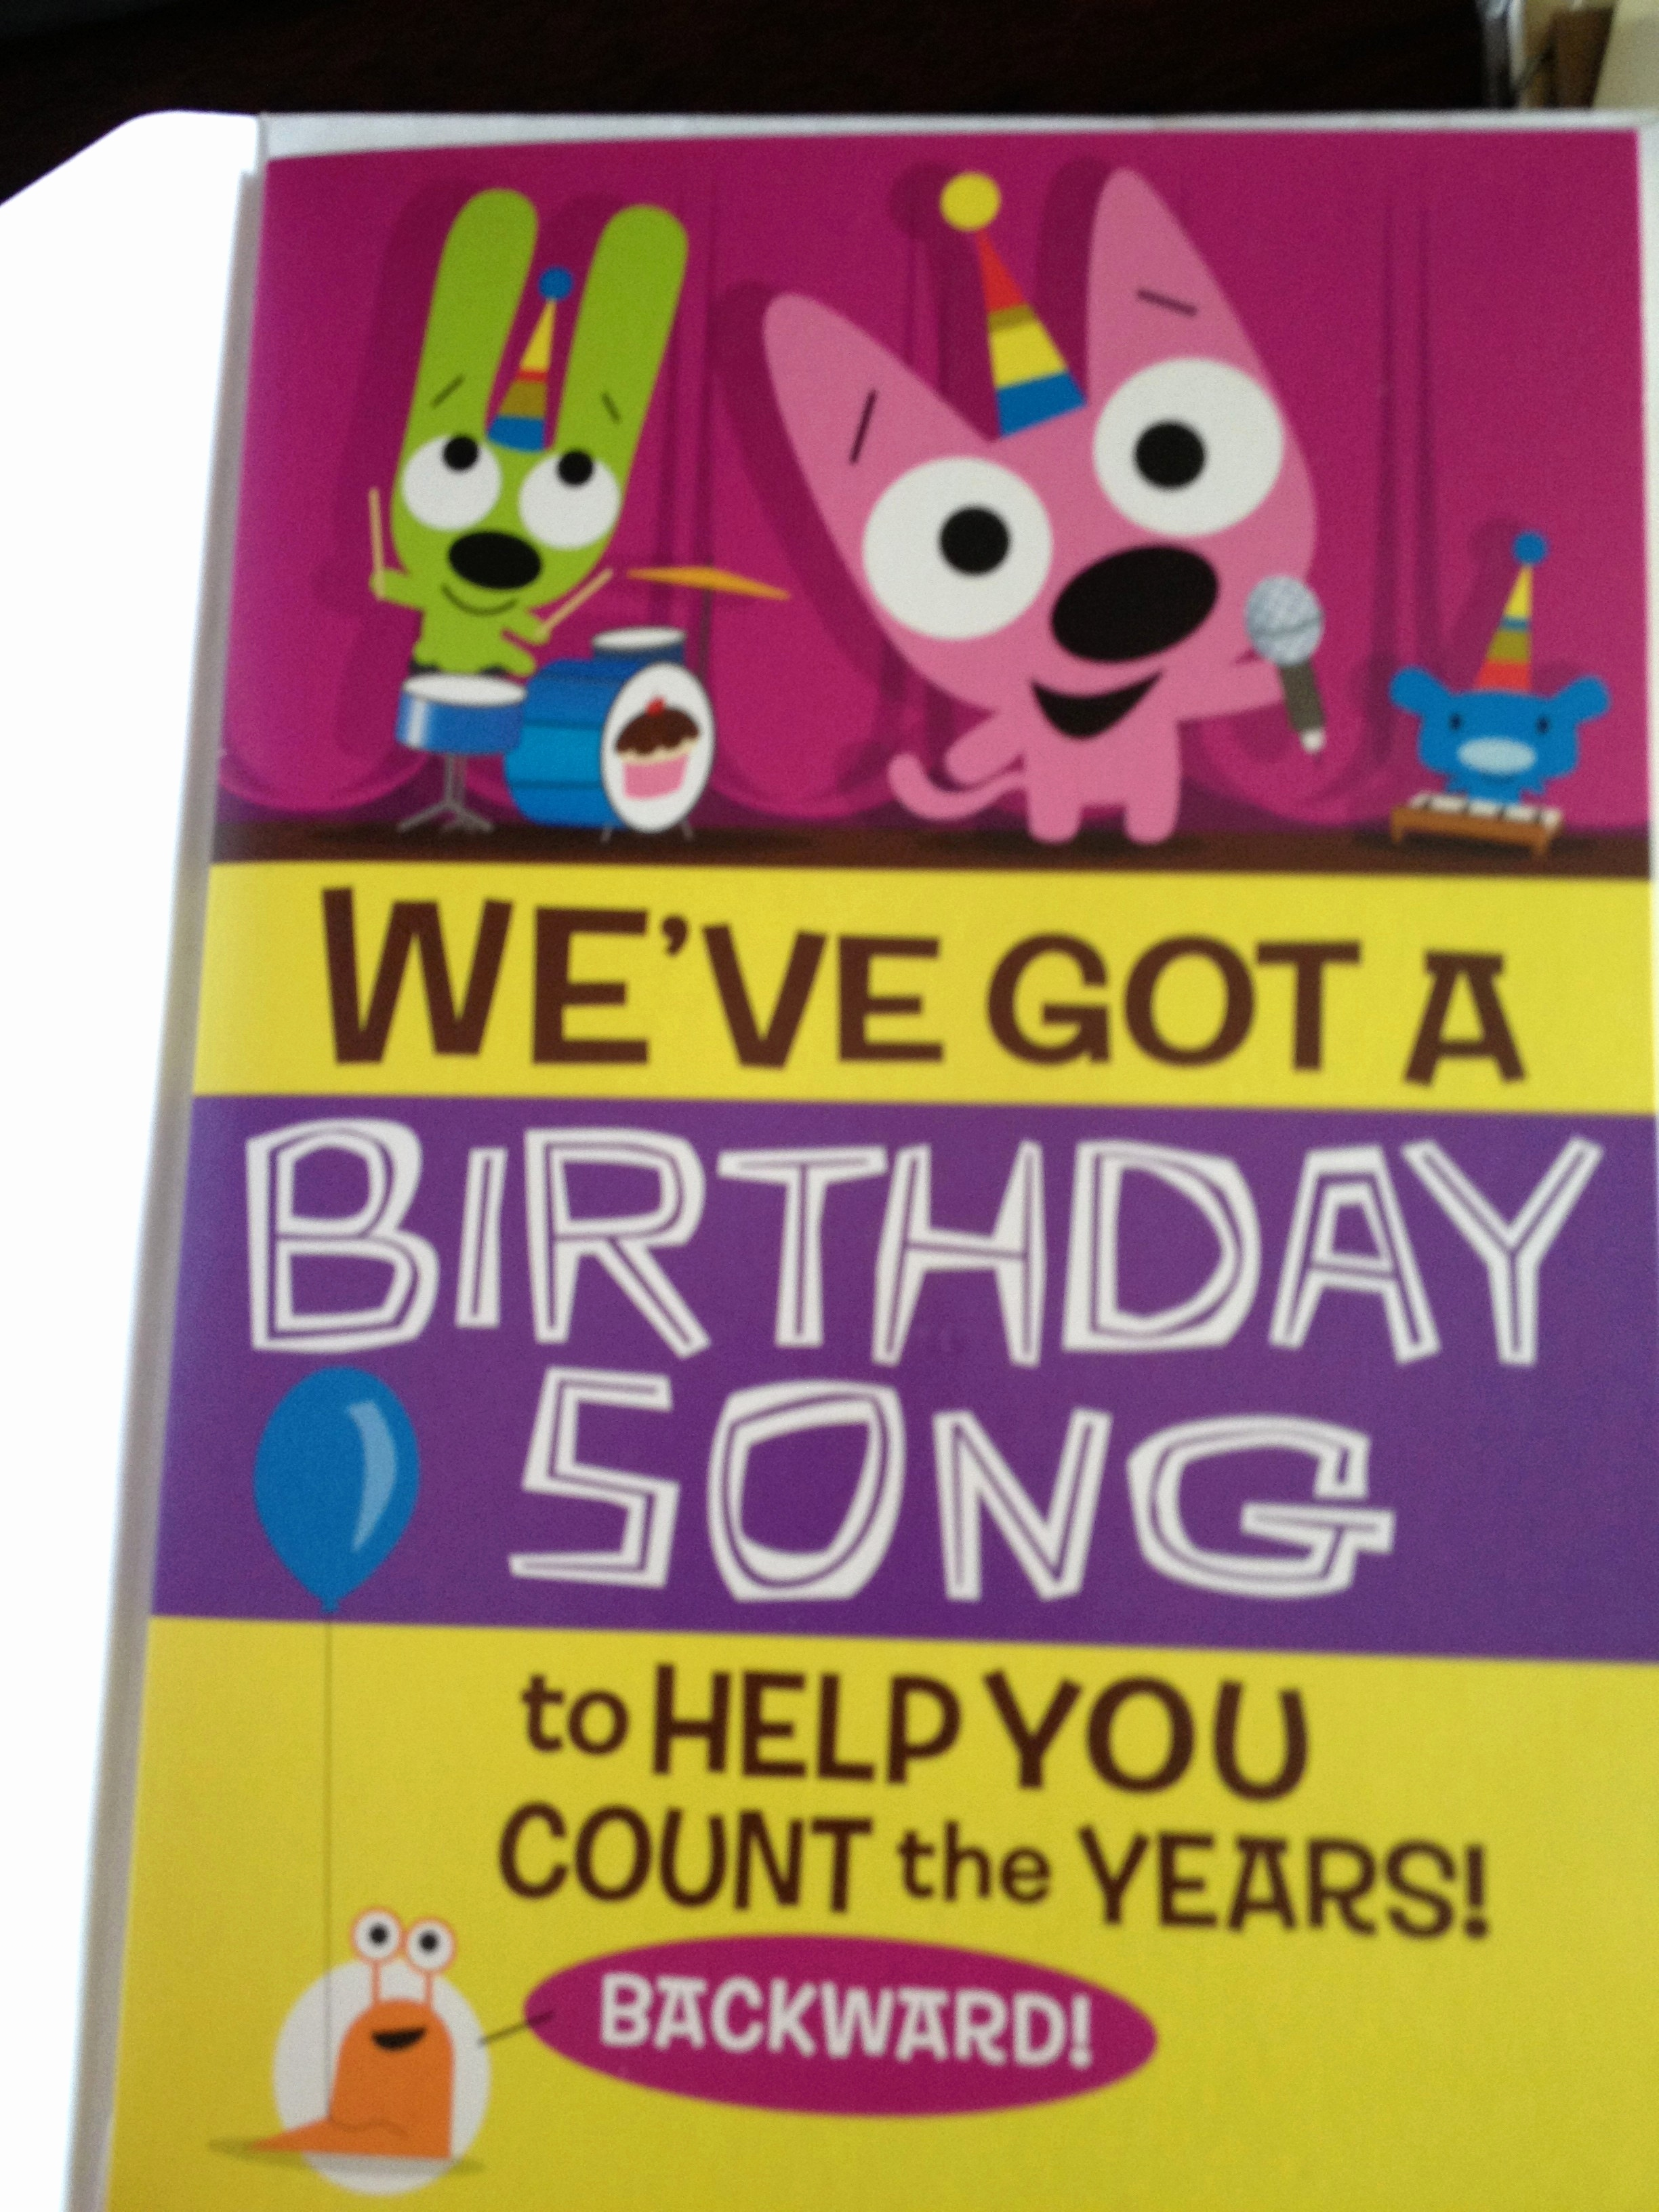 singing birthday cards by text message ; singing-birthday-cards-by-text-message-awesome-birthday-wishes-singing-cards-fresh-singing-birthday-ecards-of-singing-birthday-cards-by-text-message